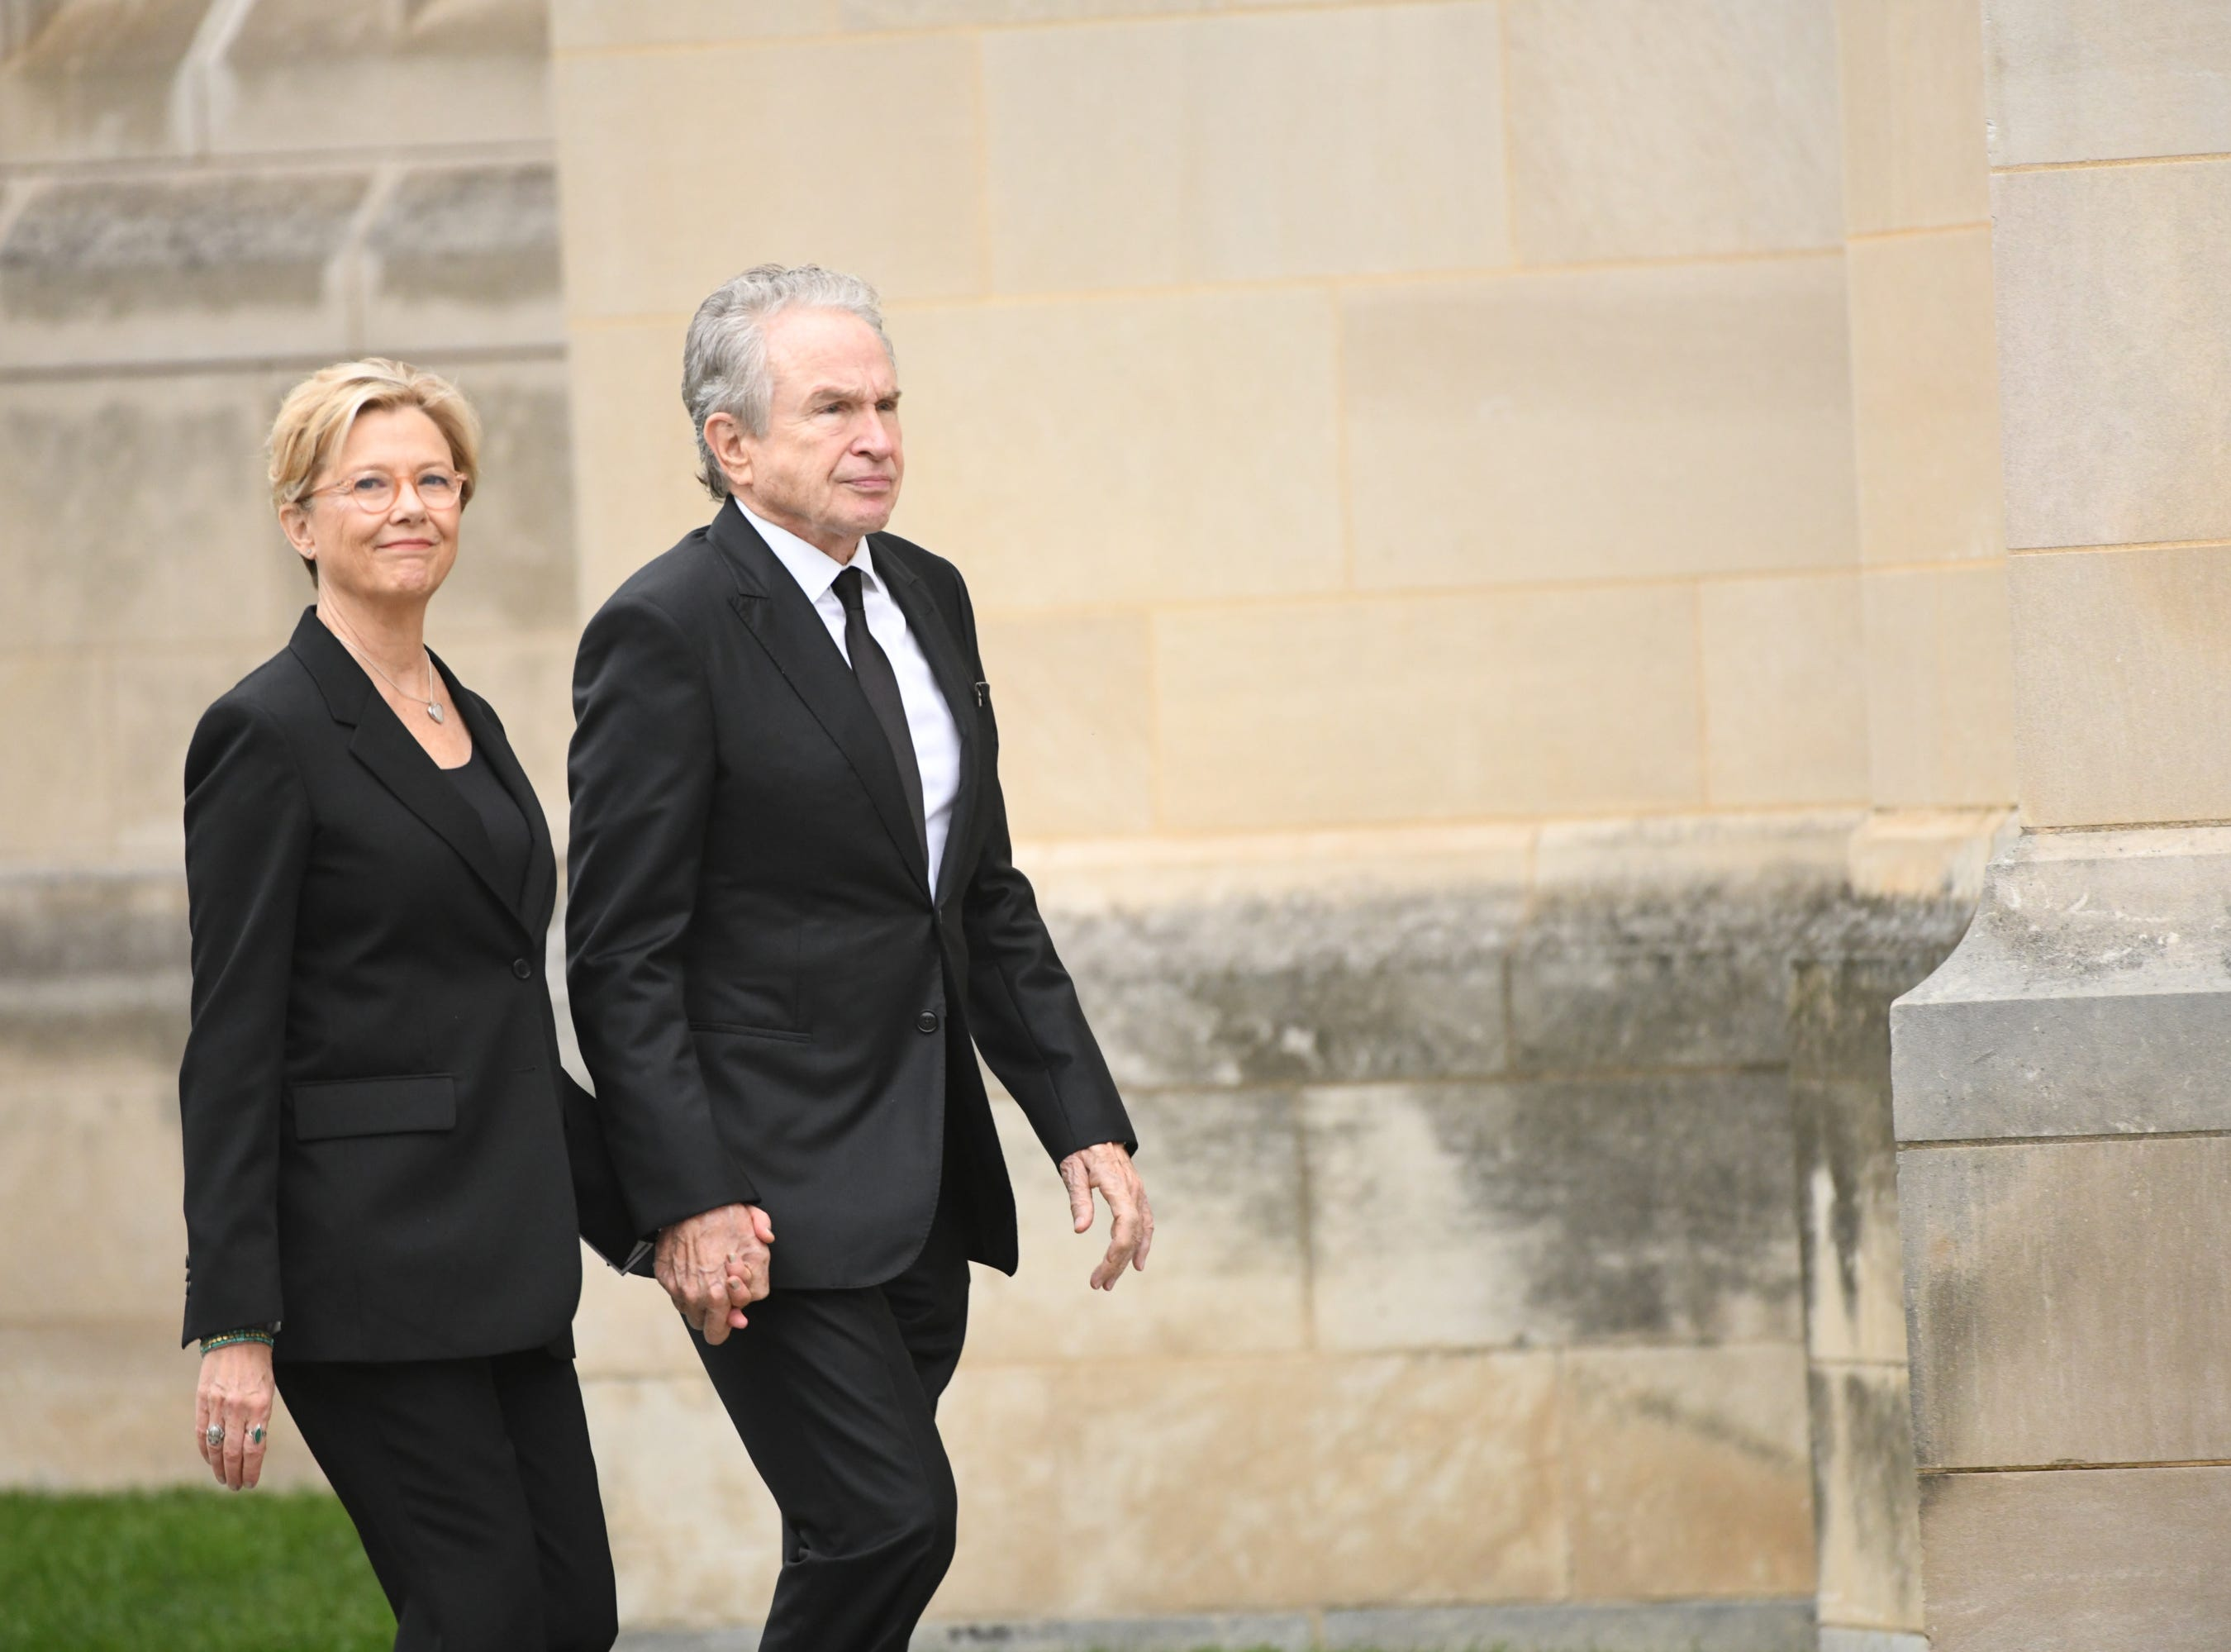 Warren Beatty and Annette Bening arrive at the National Cathedral in Washington for a memorial service for John McCain on Sept. 1, 2018. Sen. McCain on Aug. 25.